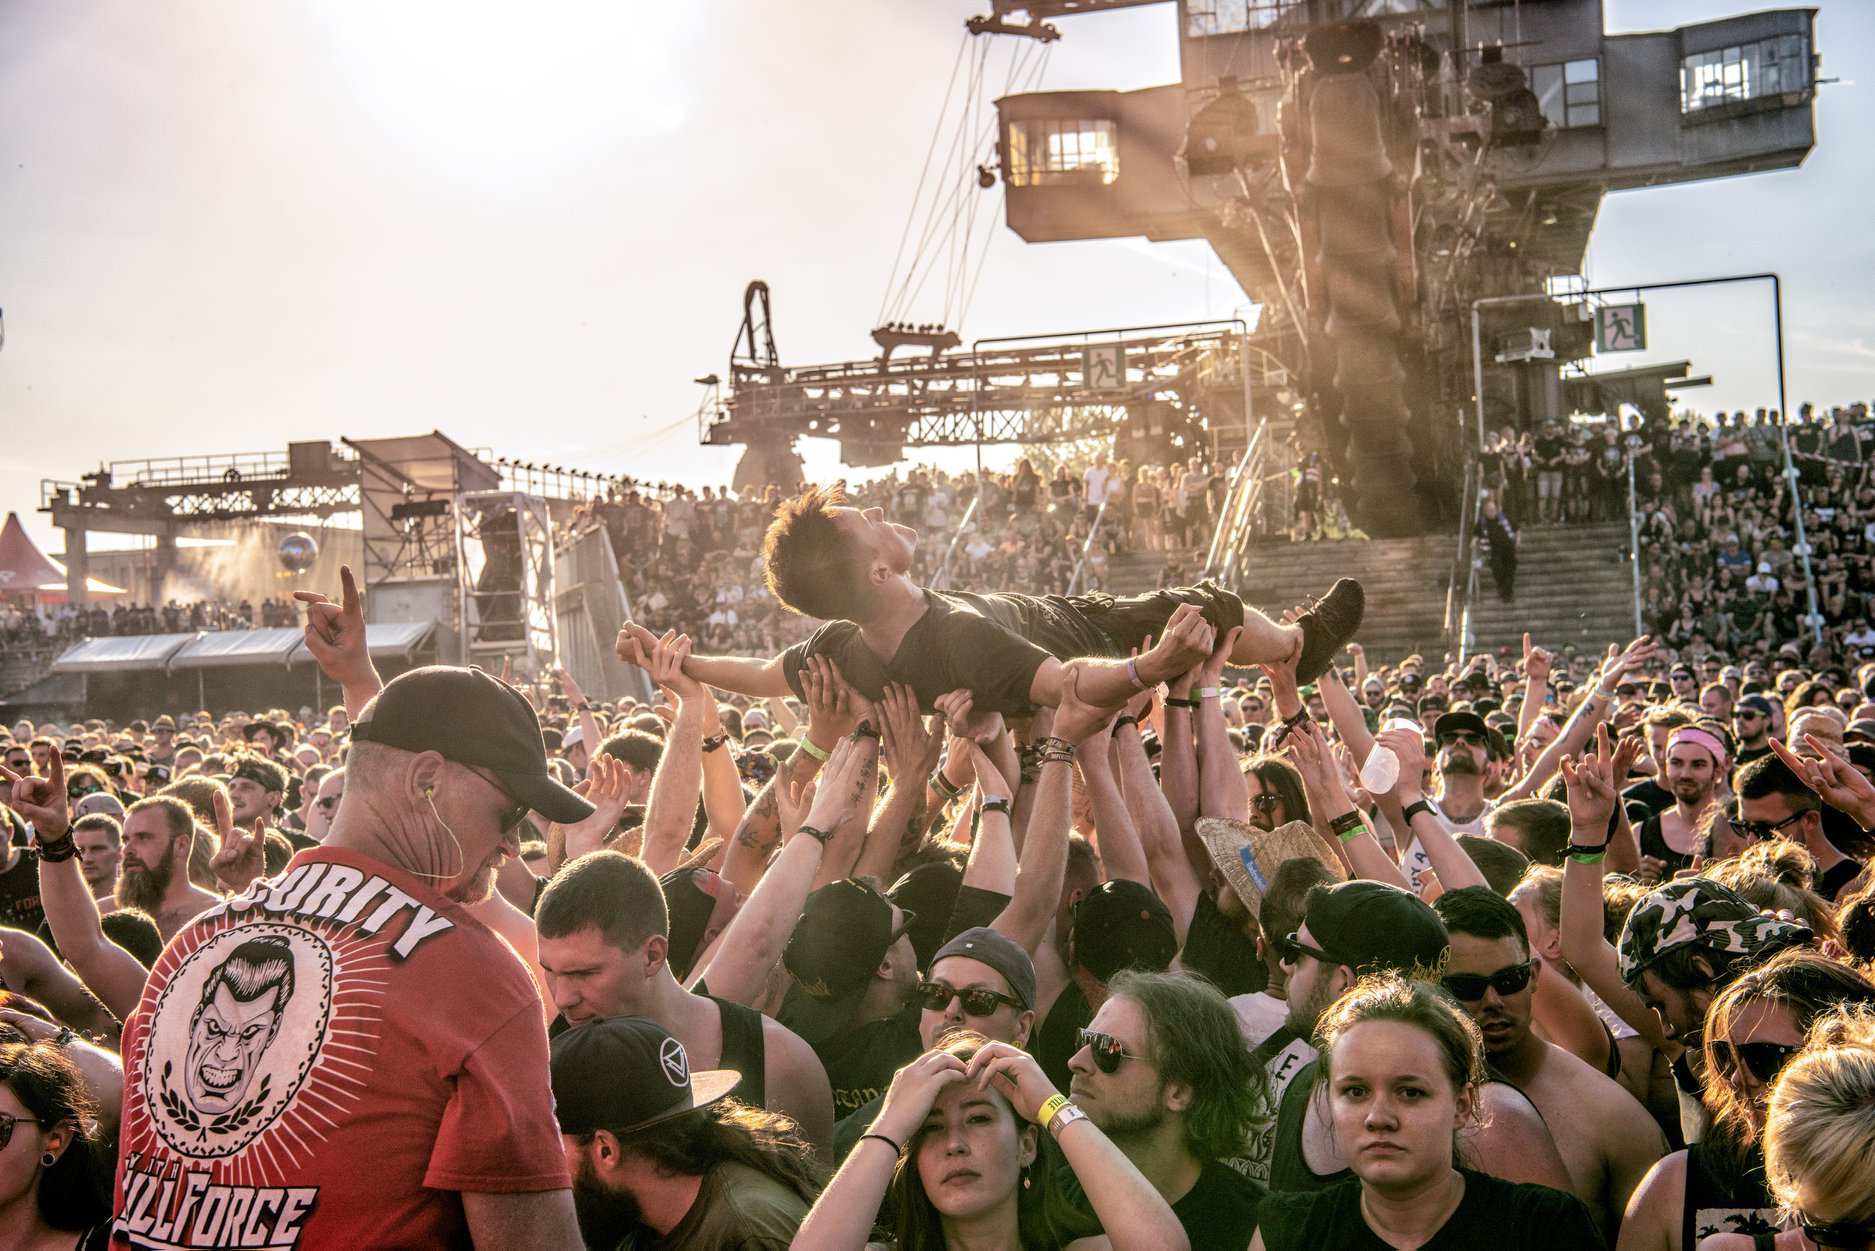 Stage dive at full force festival